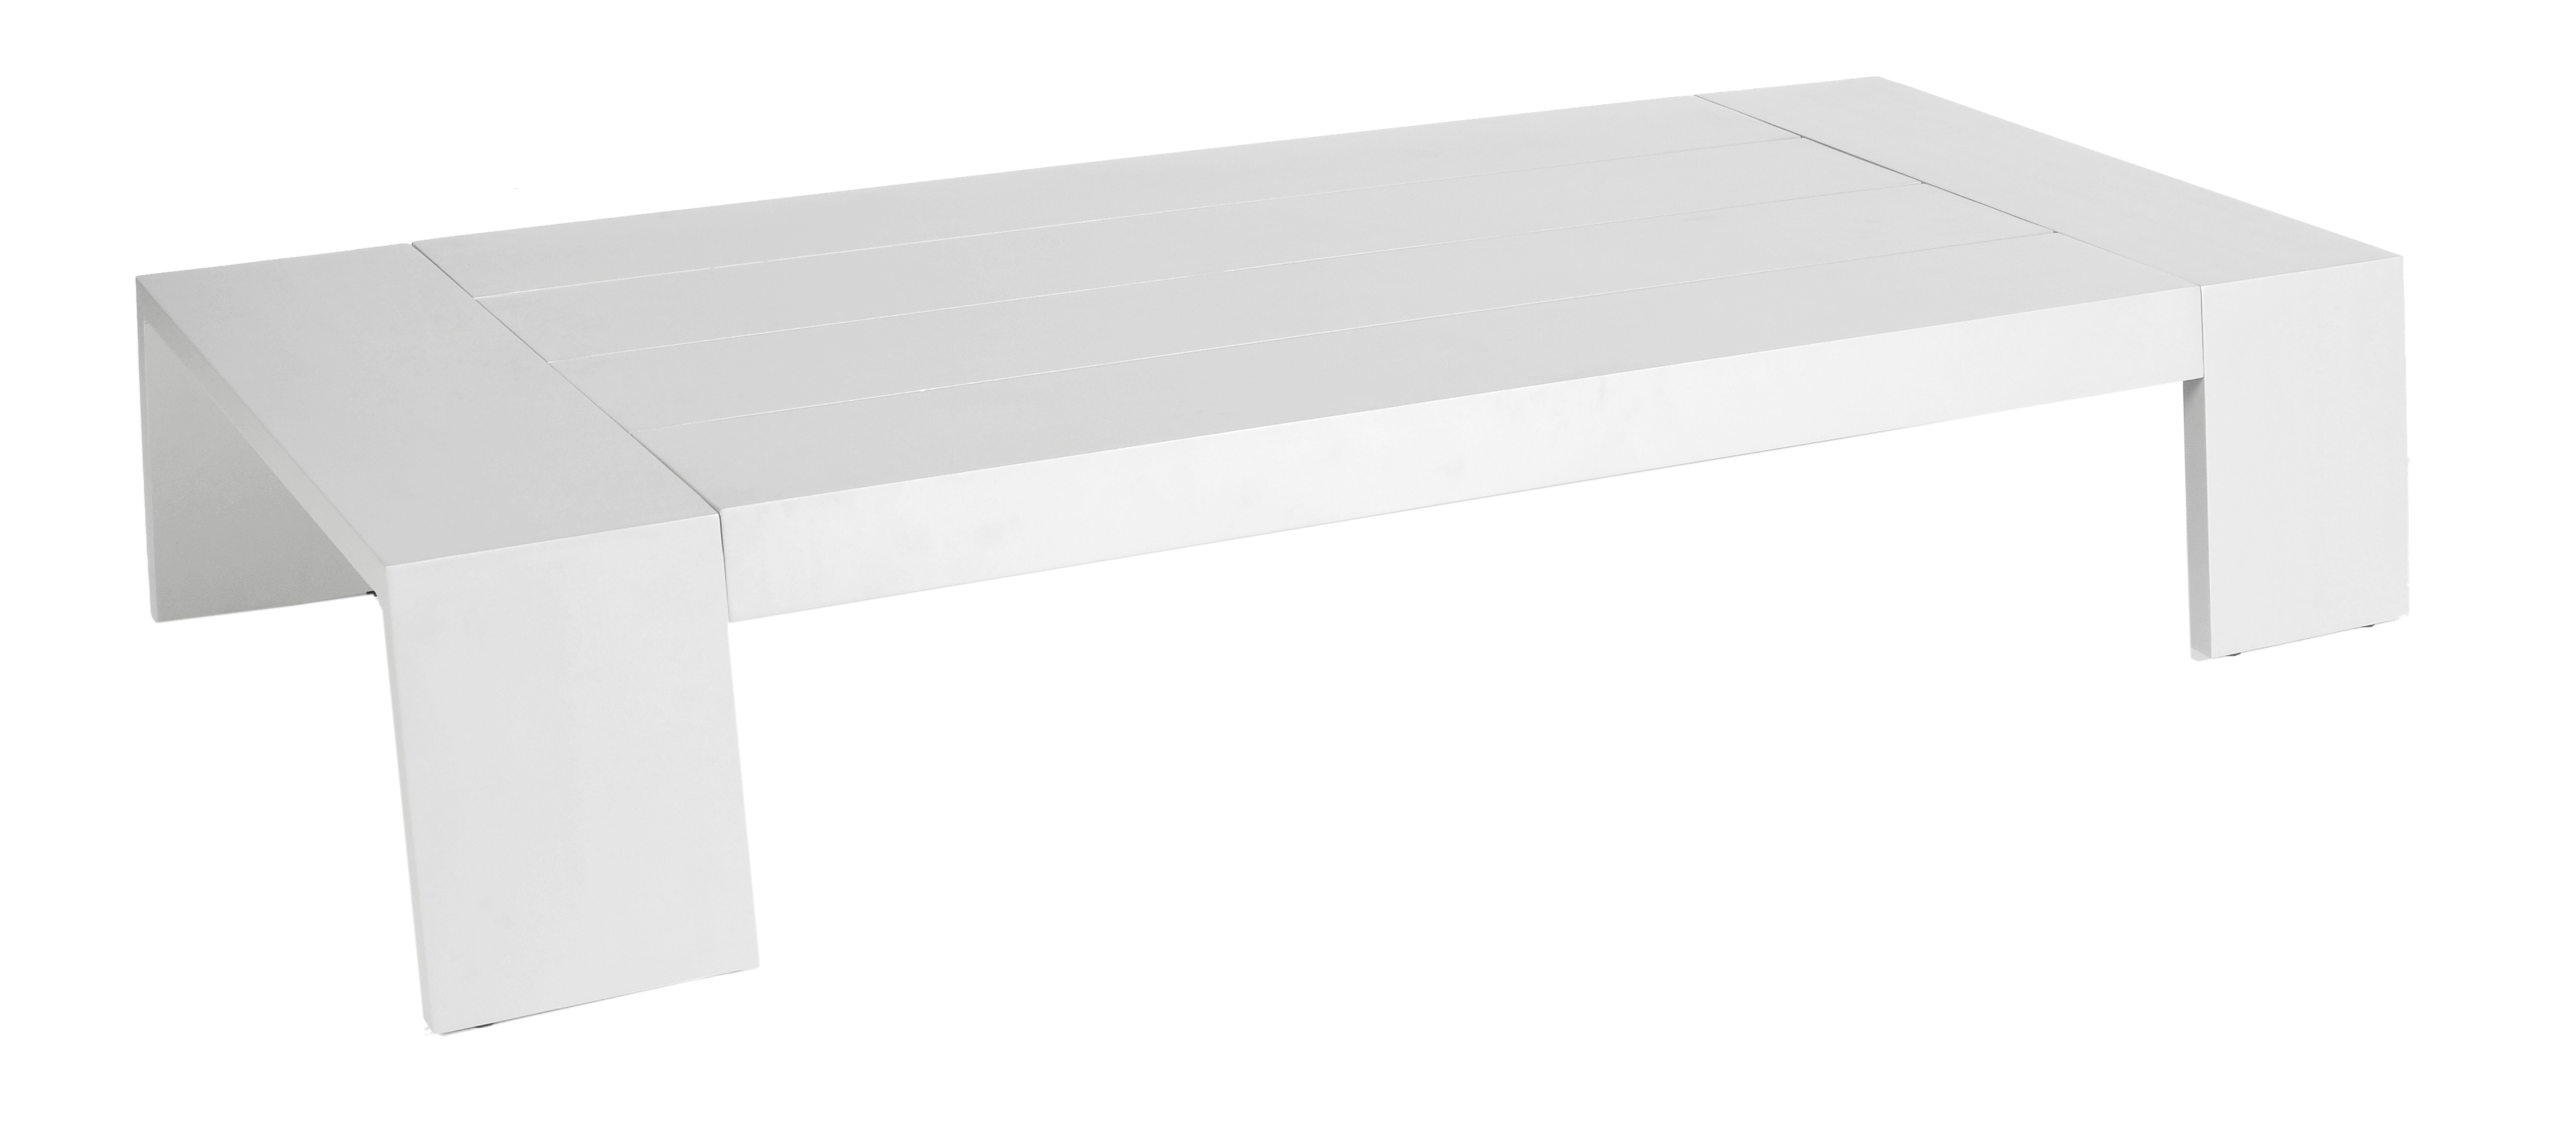 Borek Viking Coffee Table 7149